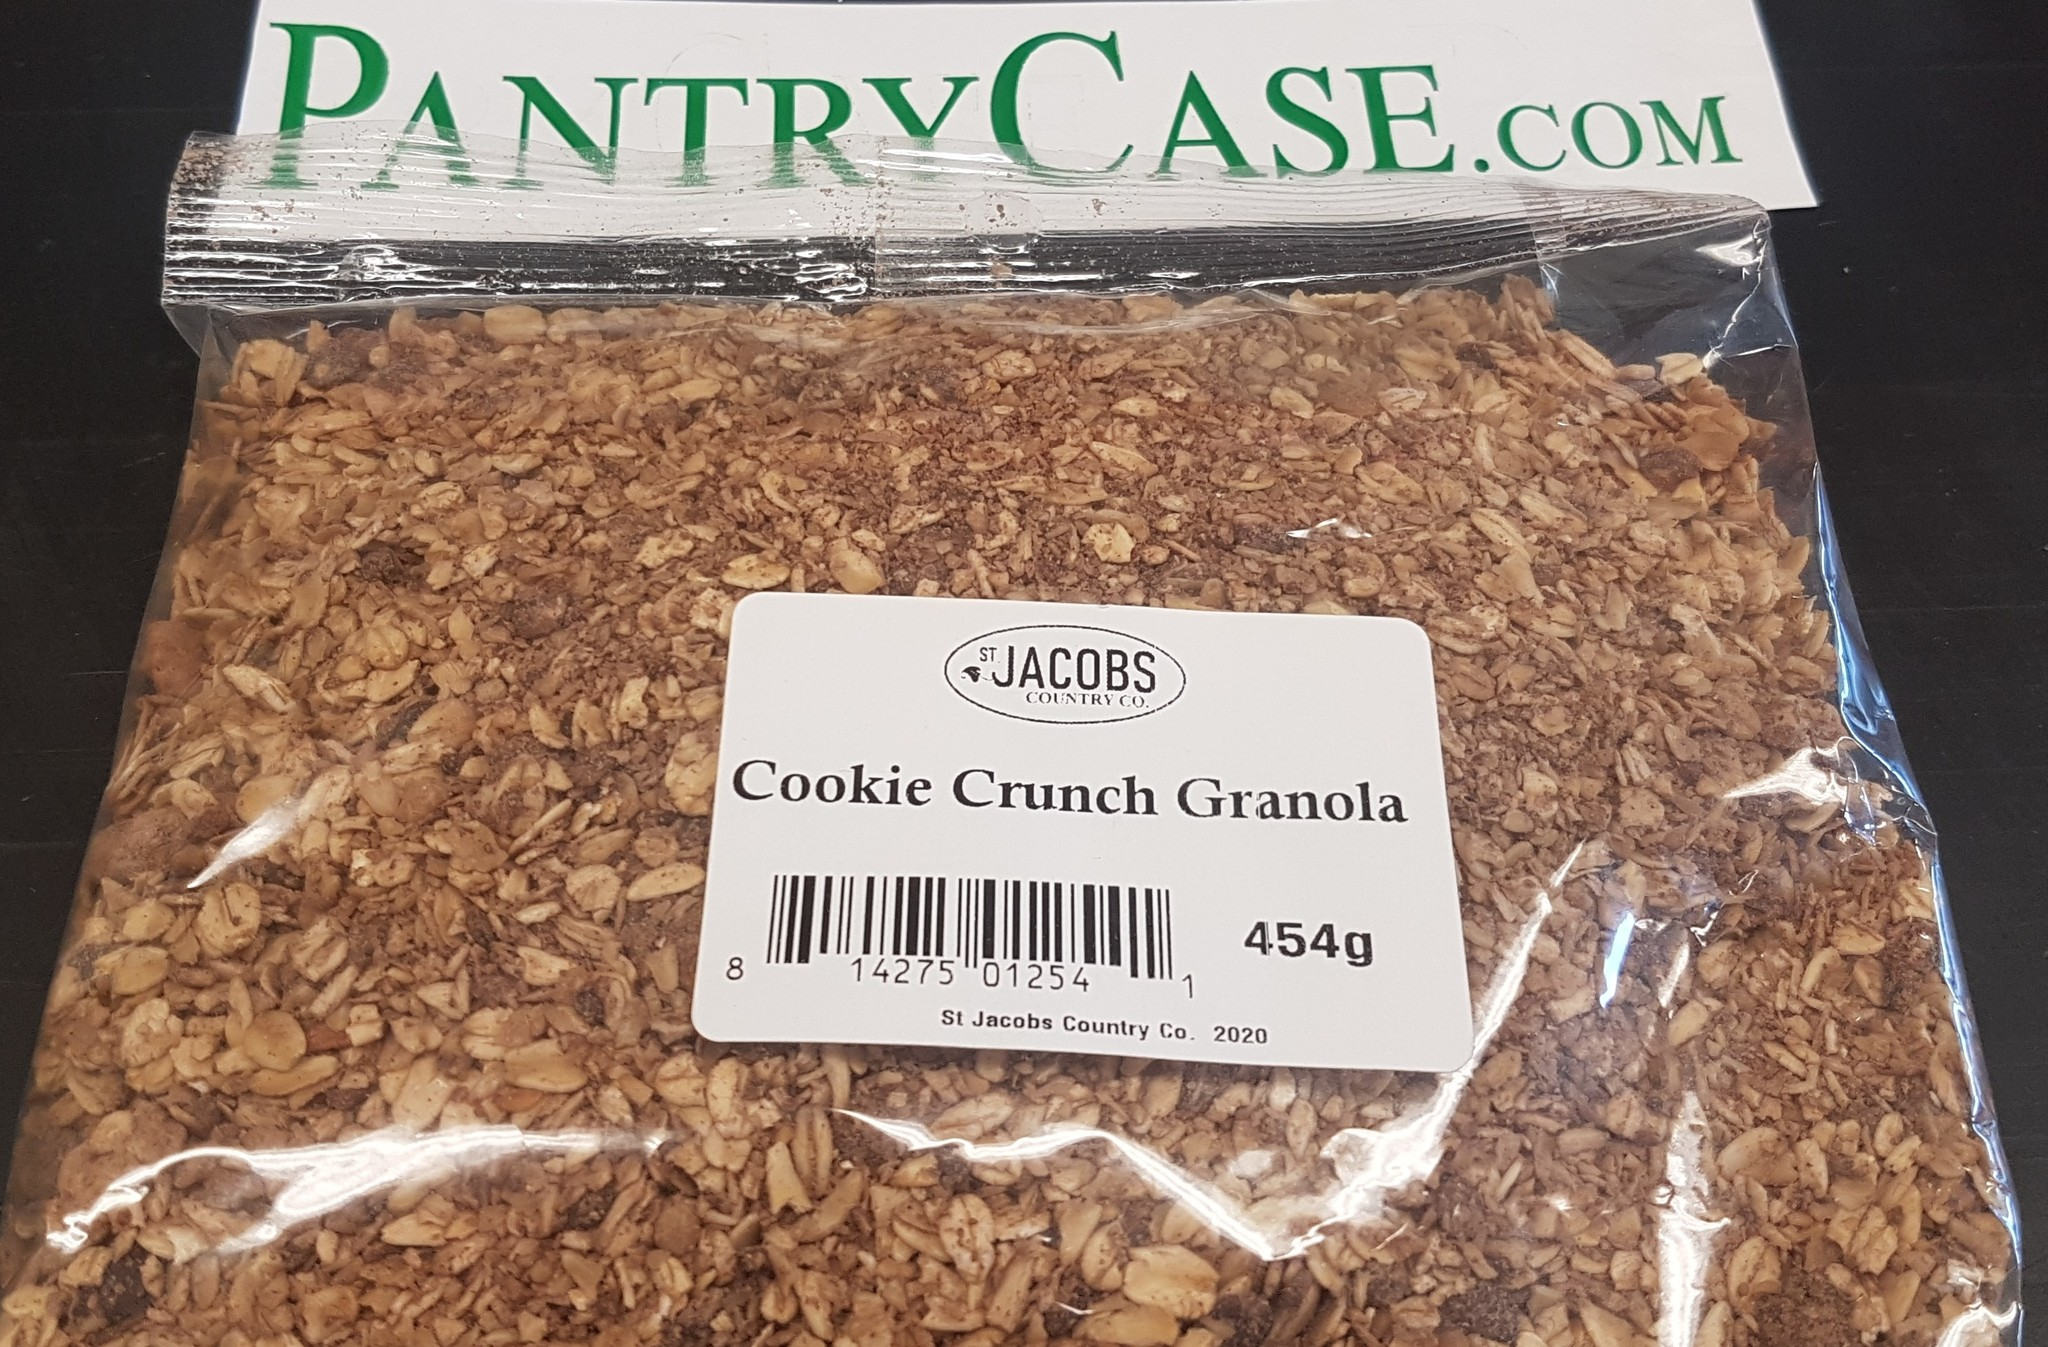 St Jacobs Country St Jacobs Cookie Crunch Granola 454g